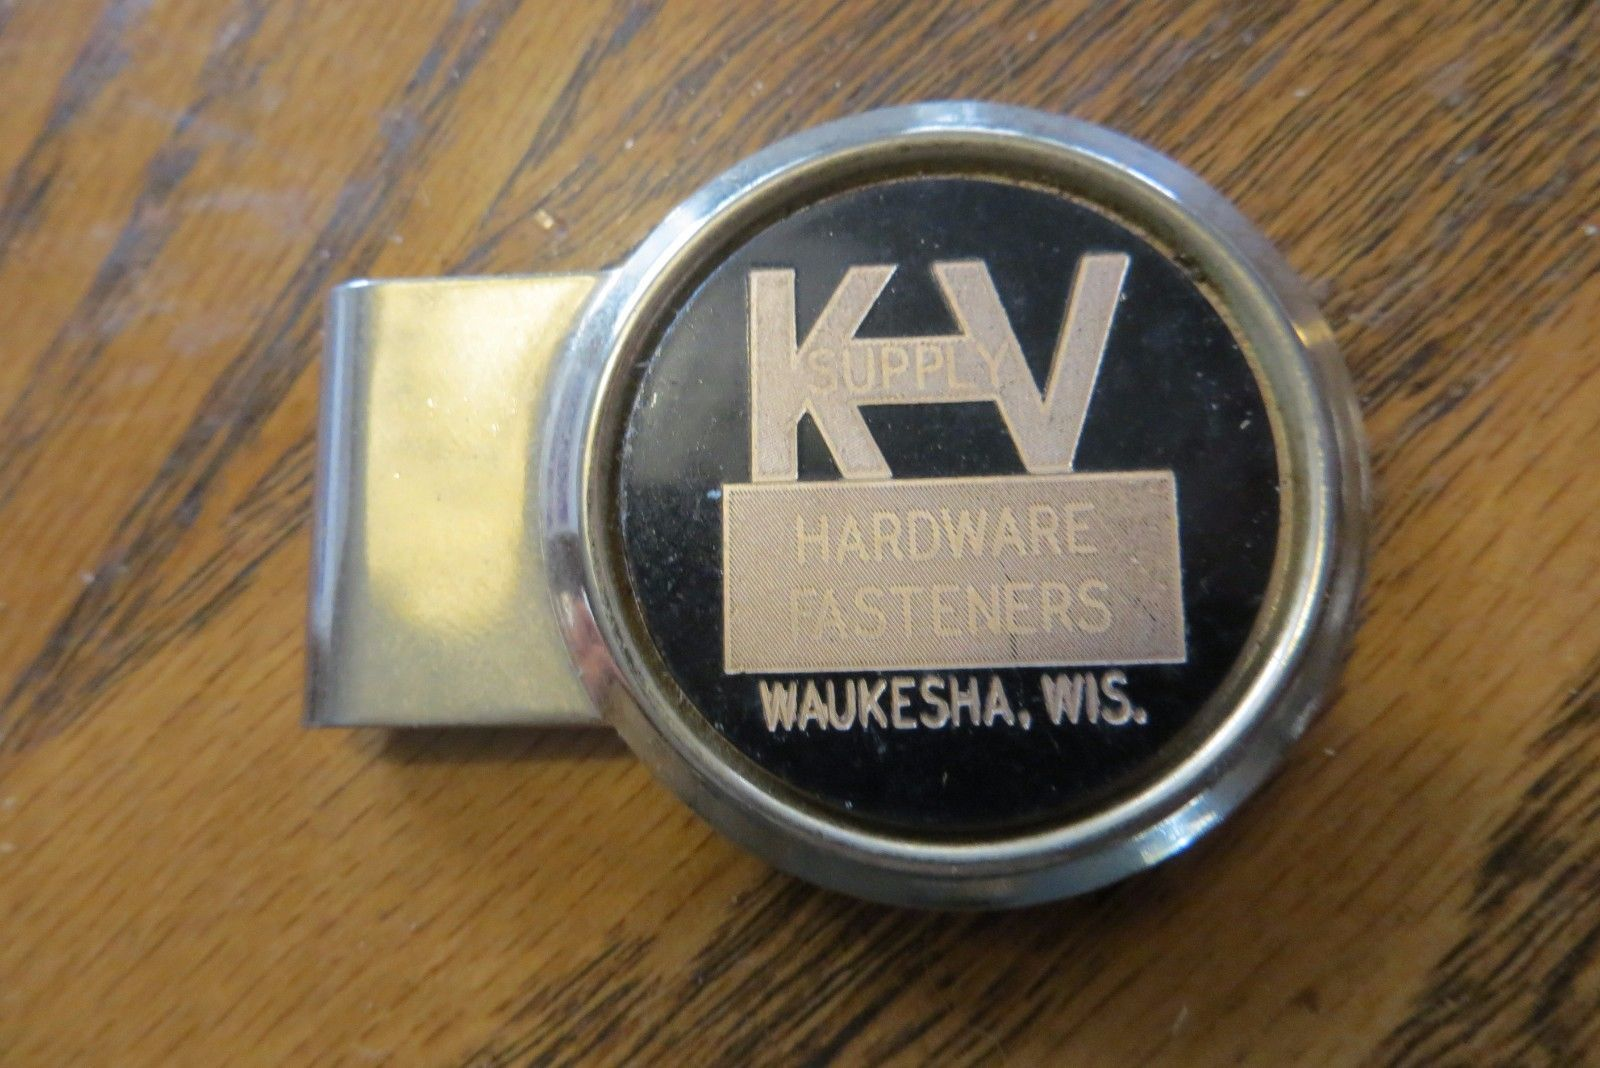 ADVERTISING MONEY CLIP, K.V SUPPLY HARDWARE FASTENERS,WAUKESHA WIS.